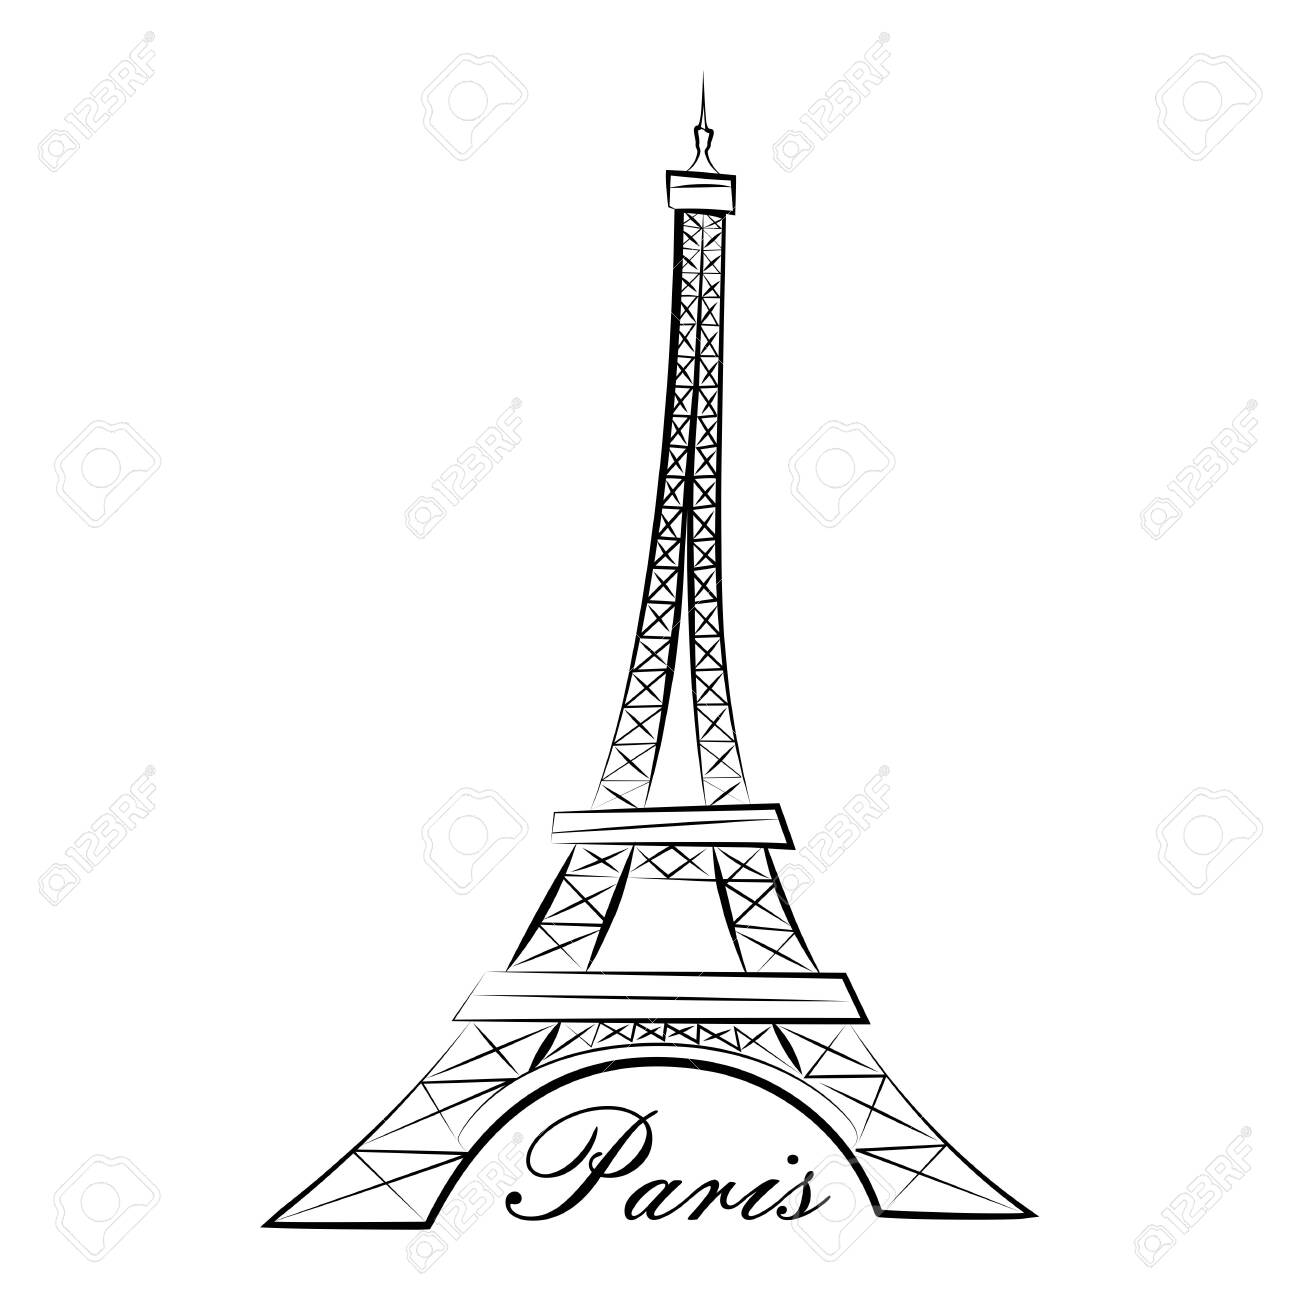 Eiffel Tower. Paris. Line graphics illustration. Isolated on a white background - 128828484